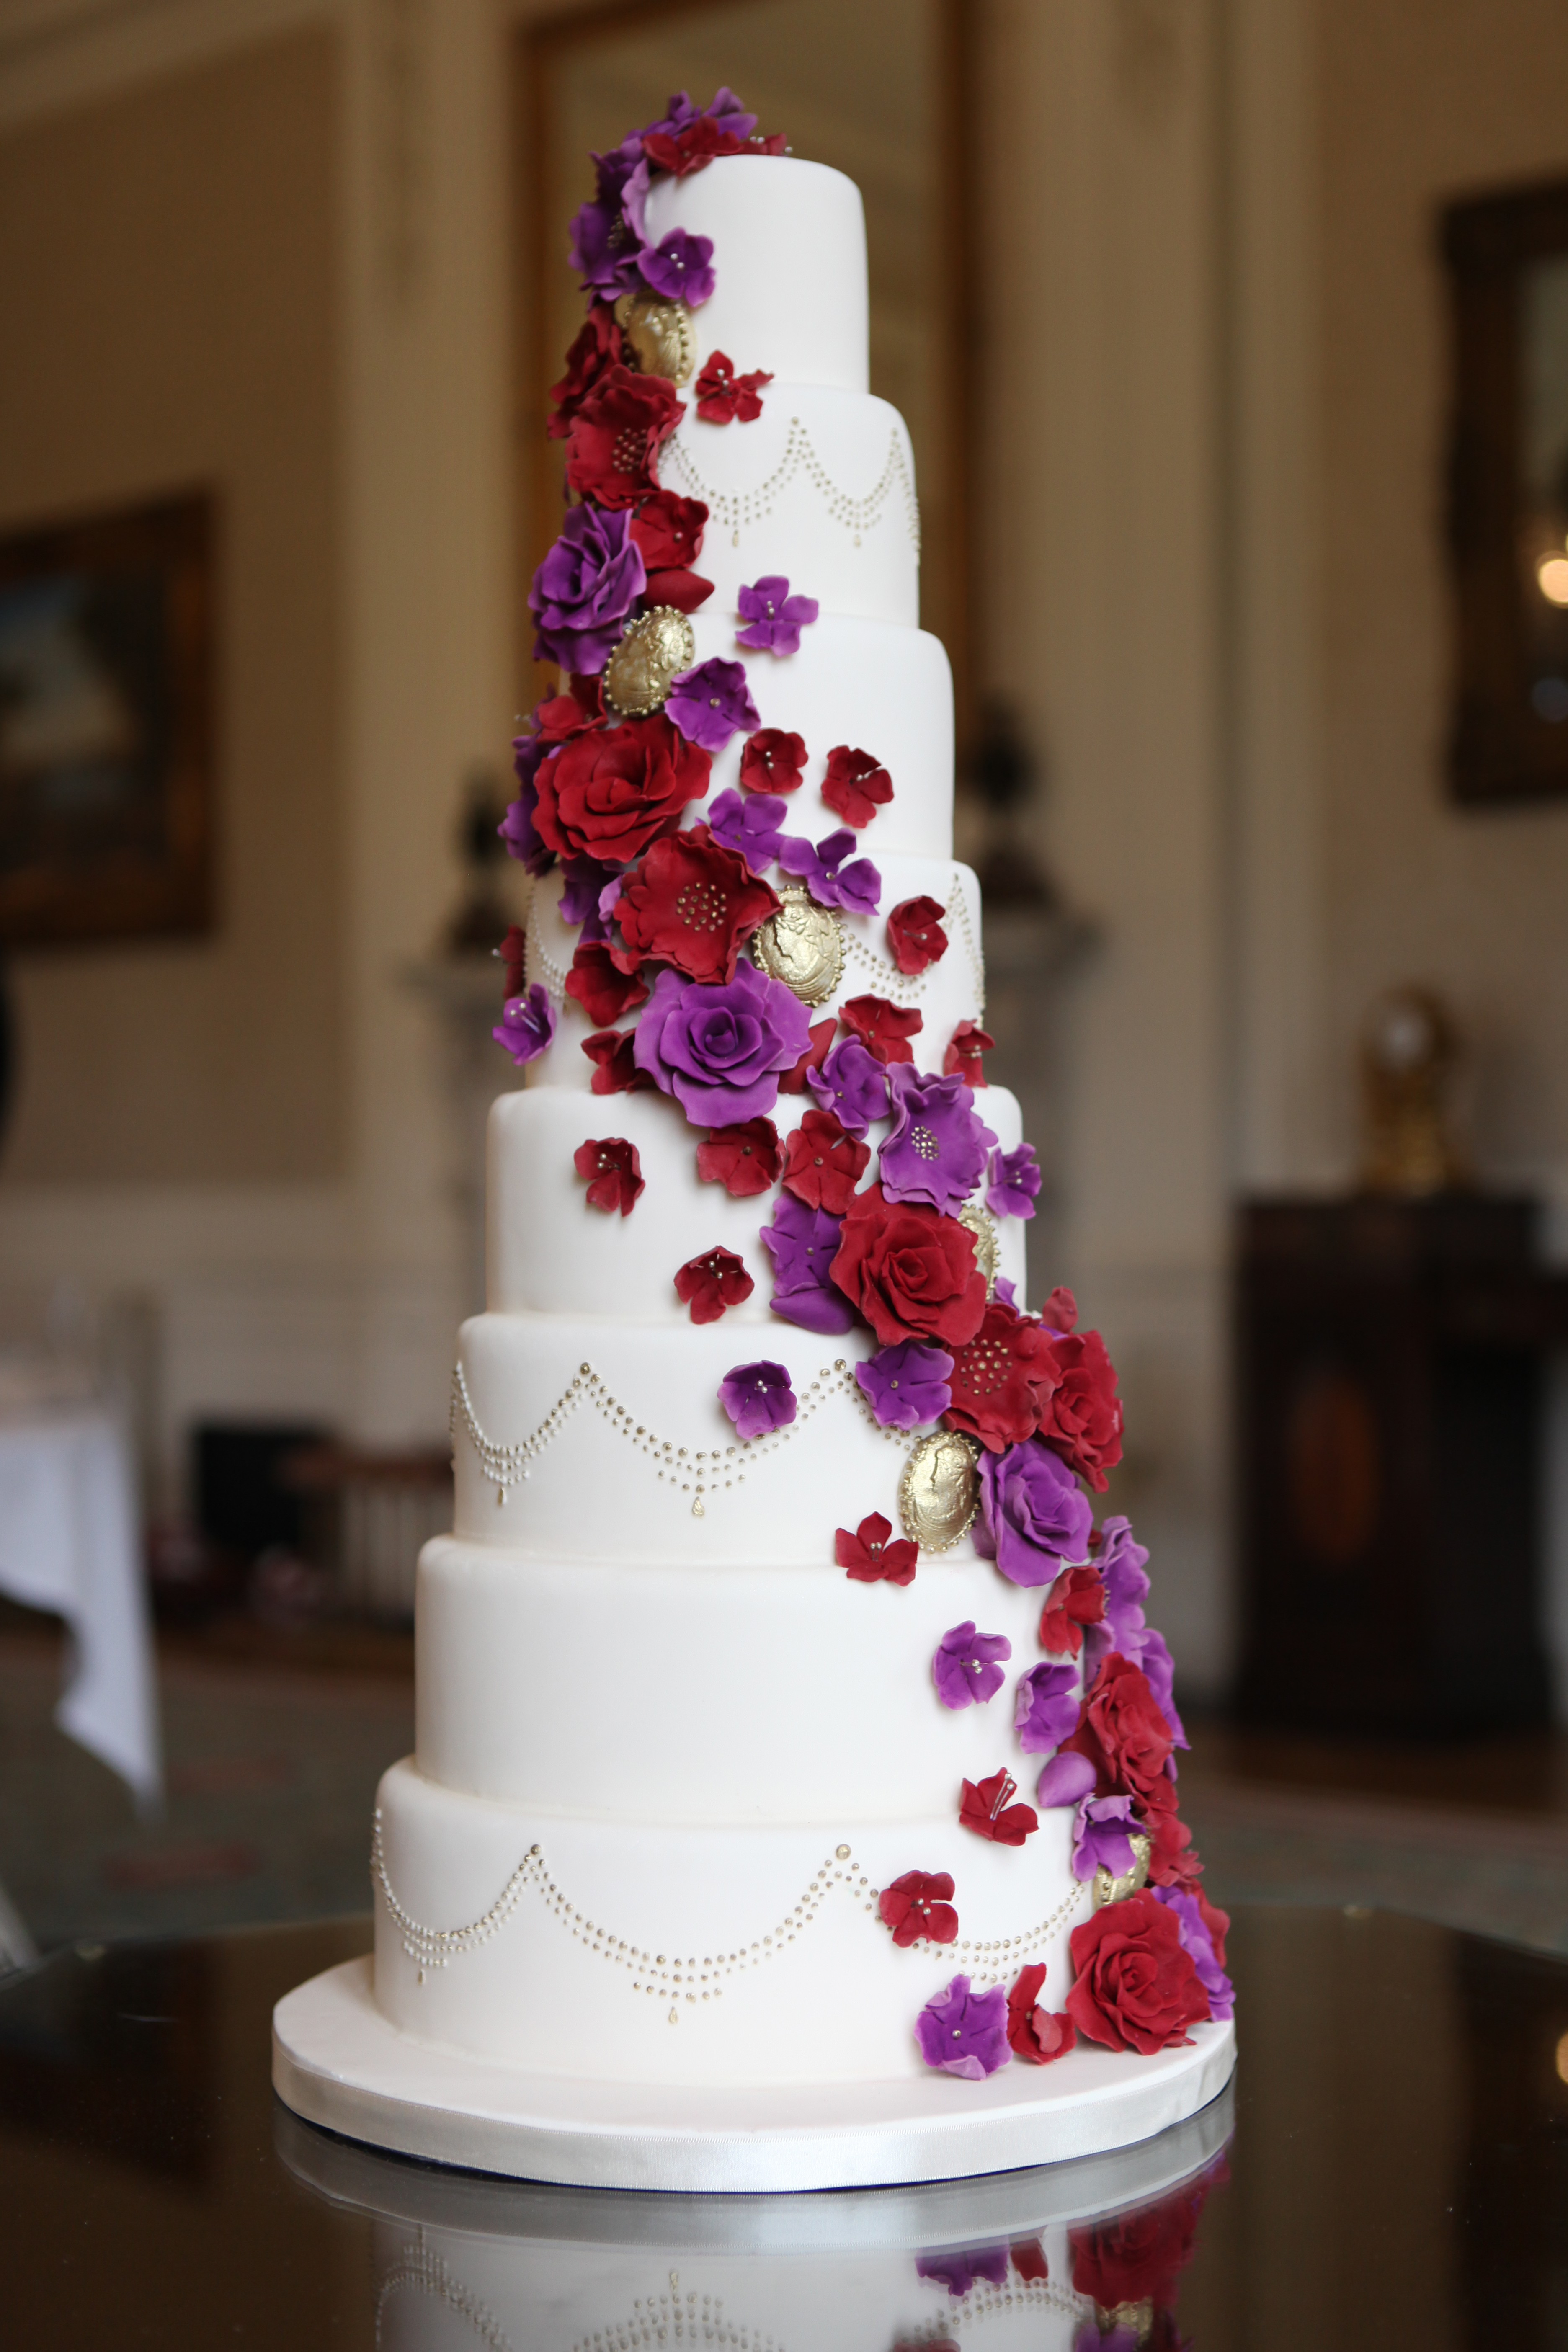 2019 Wedding Cake Trends